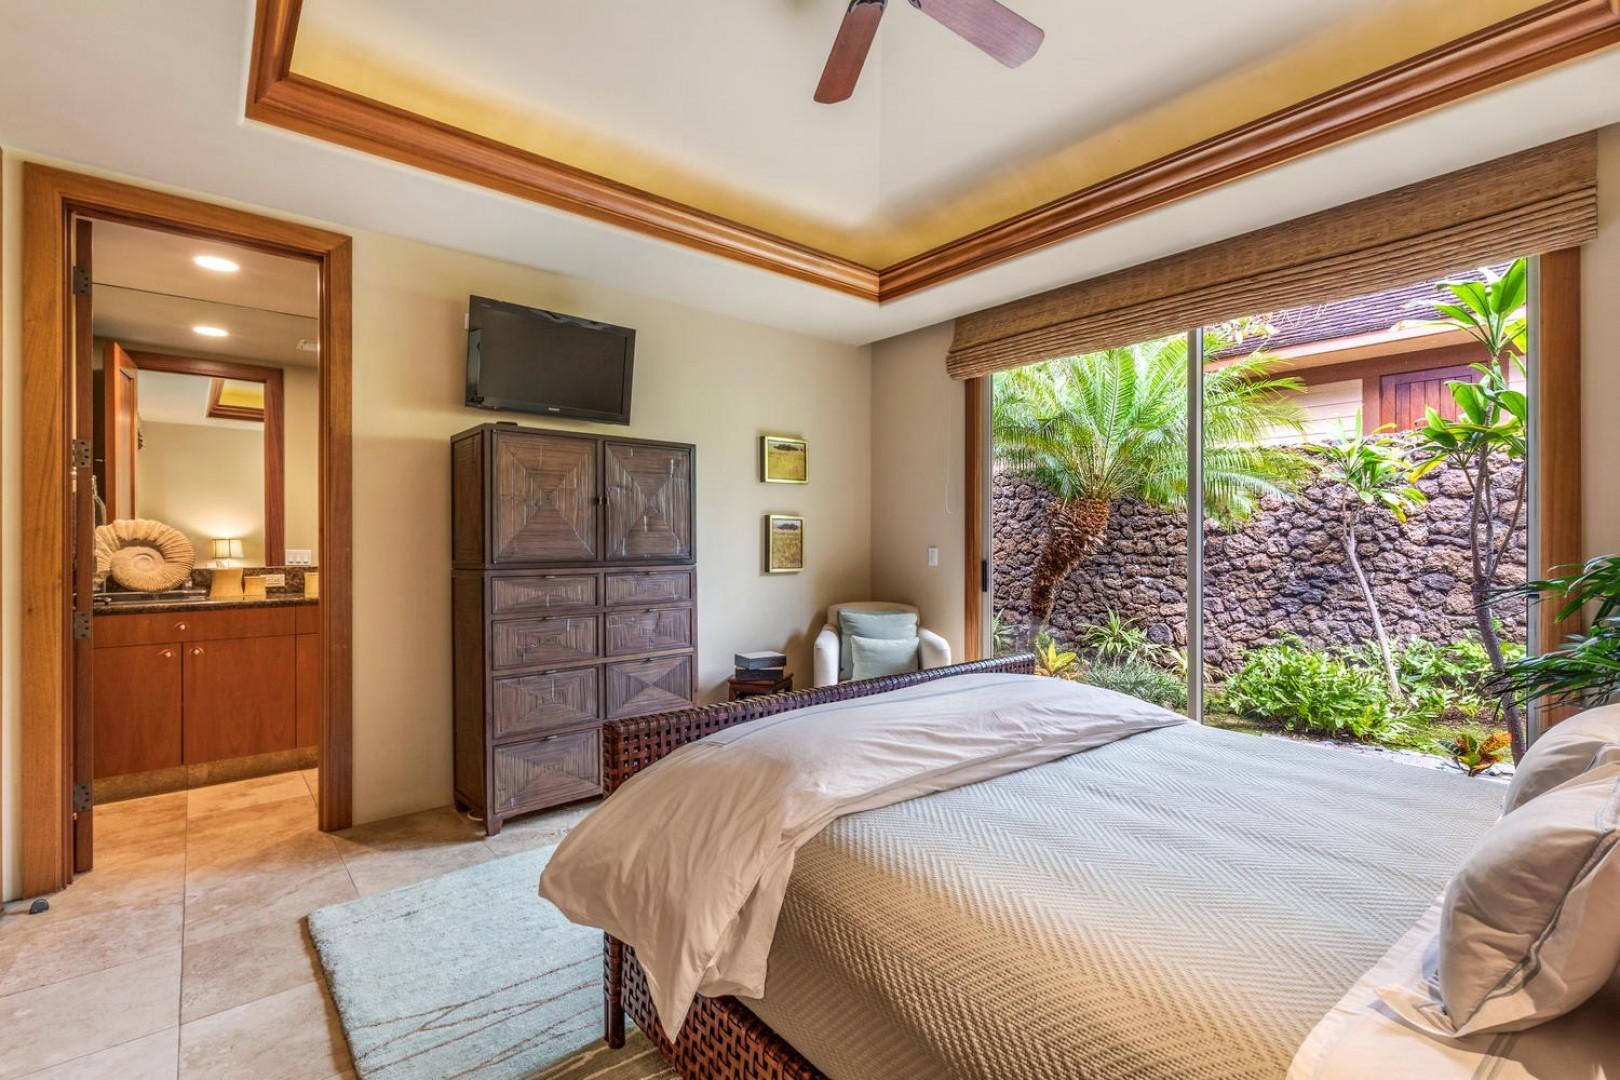 Second guest suite, alternate view showcasing wall-mounted flat screen television.